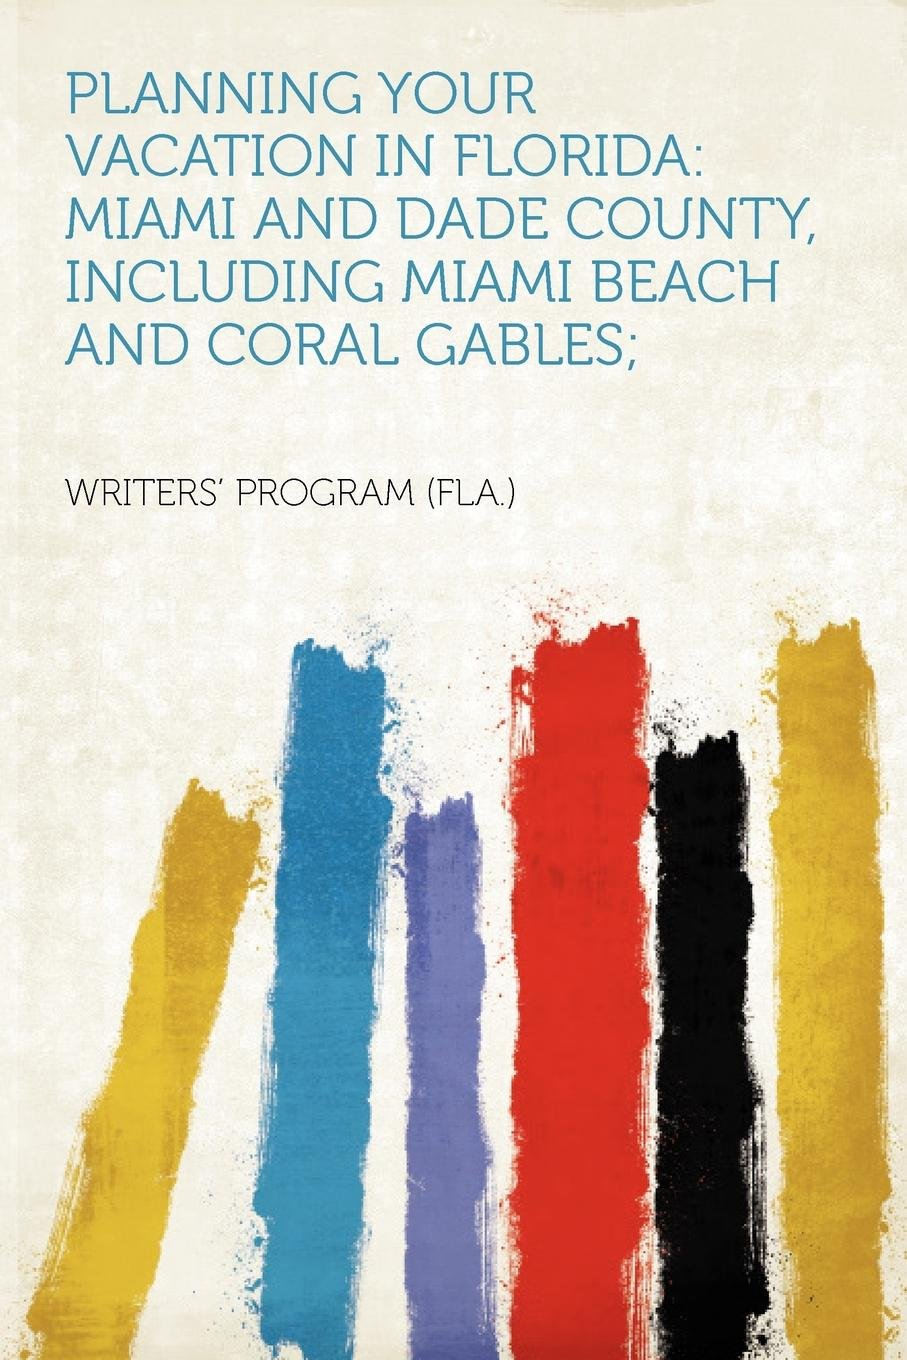 Planning Your Vacation in Florida: Miami and Dade County, Including Miami Beach and Coral Gables; PDF